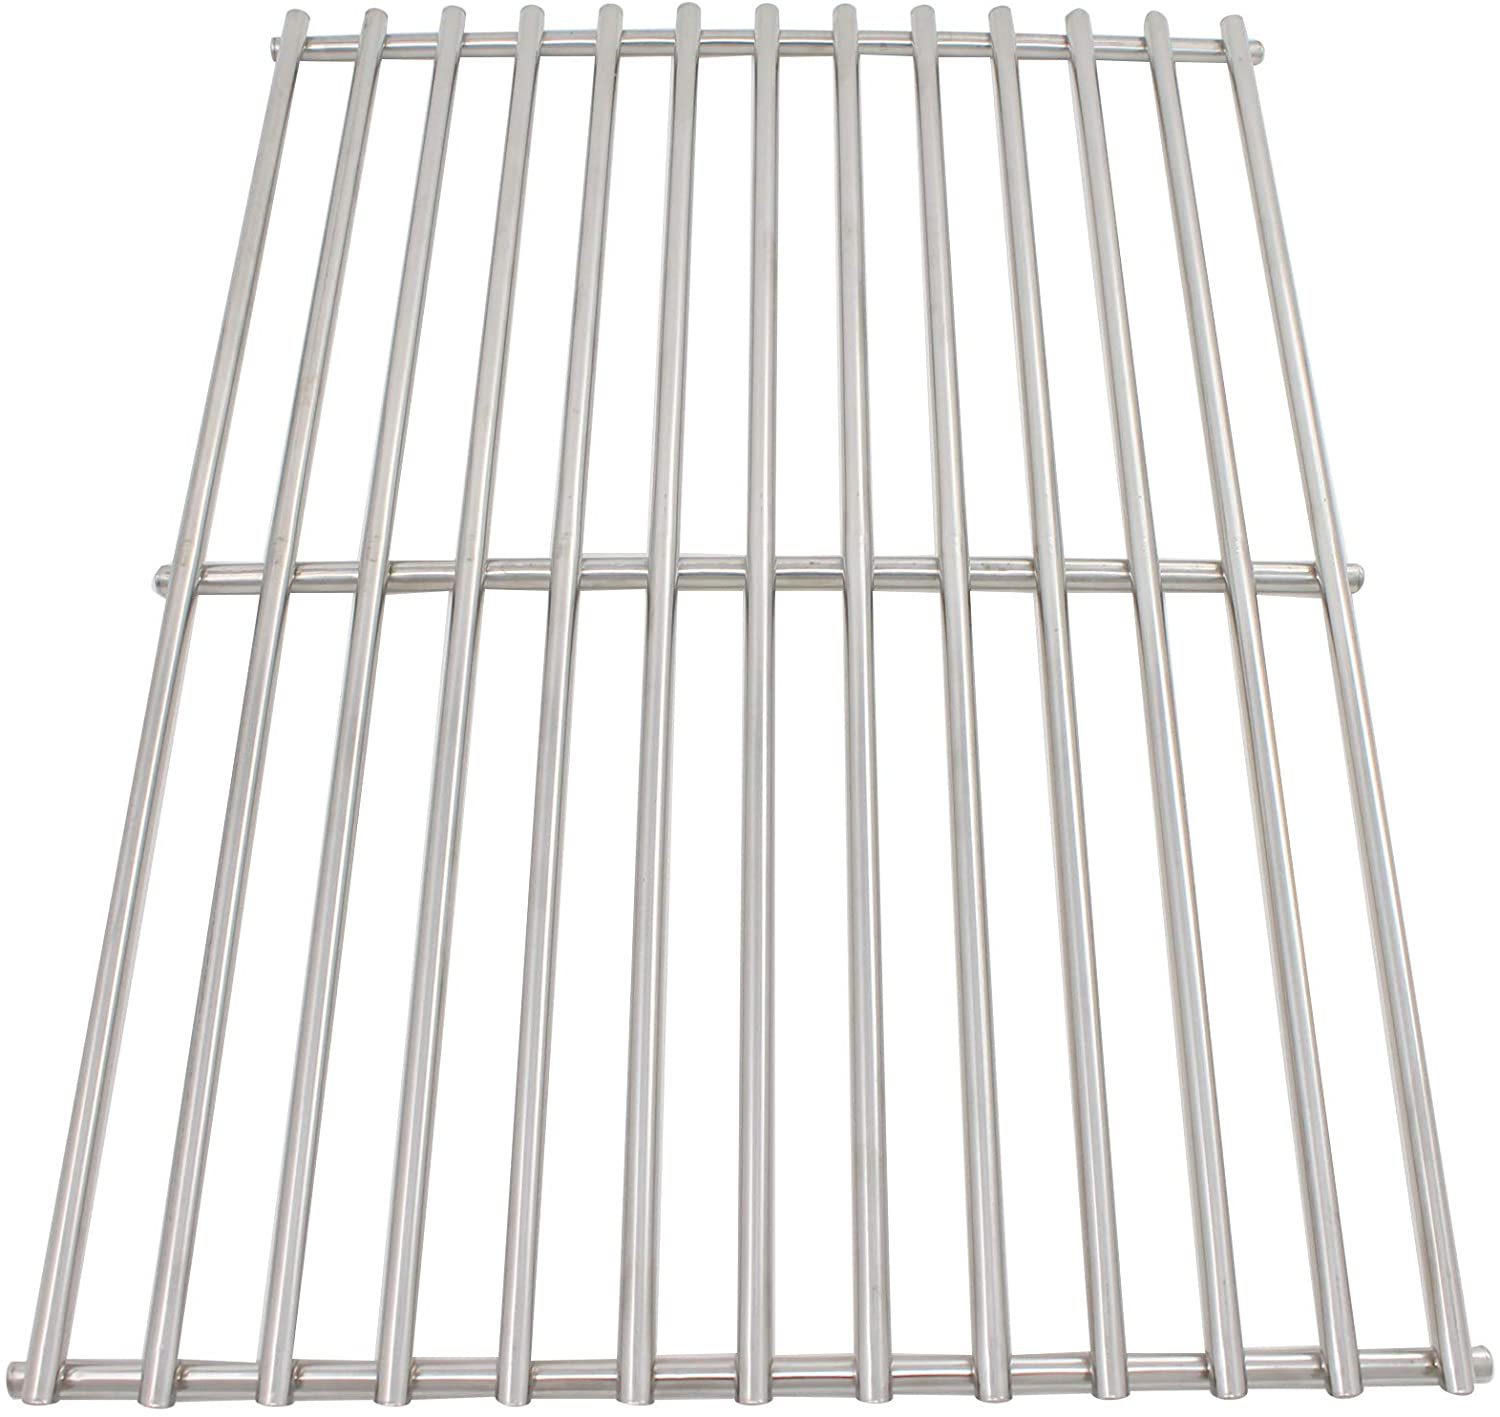 Bbq Grill Cooking Grates Replacement Parts For Weber